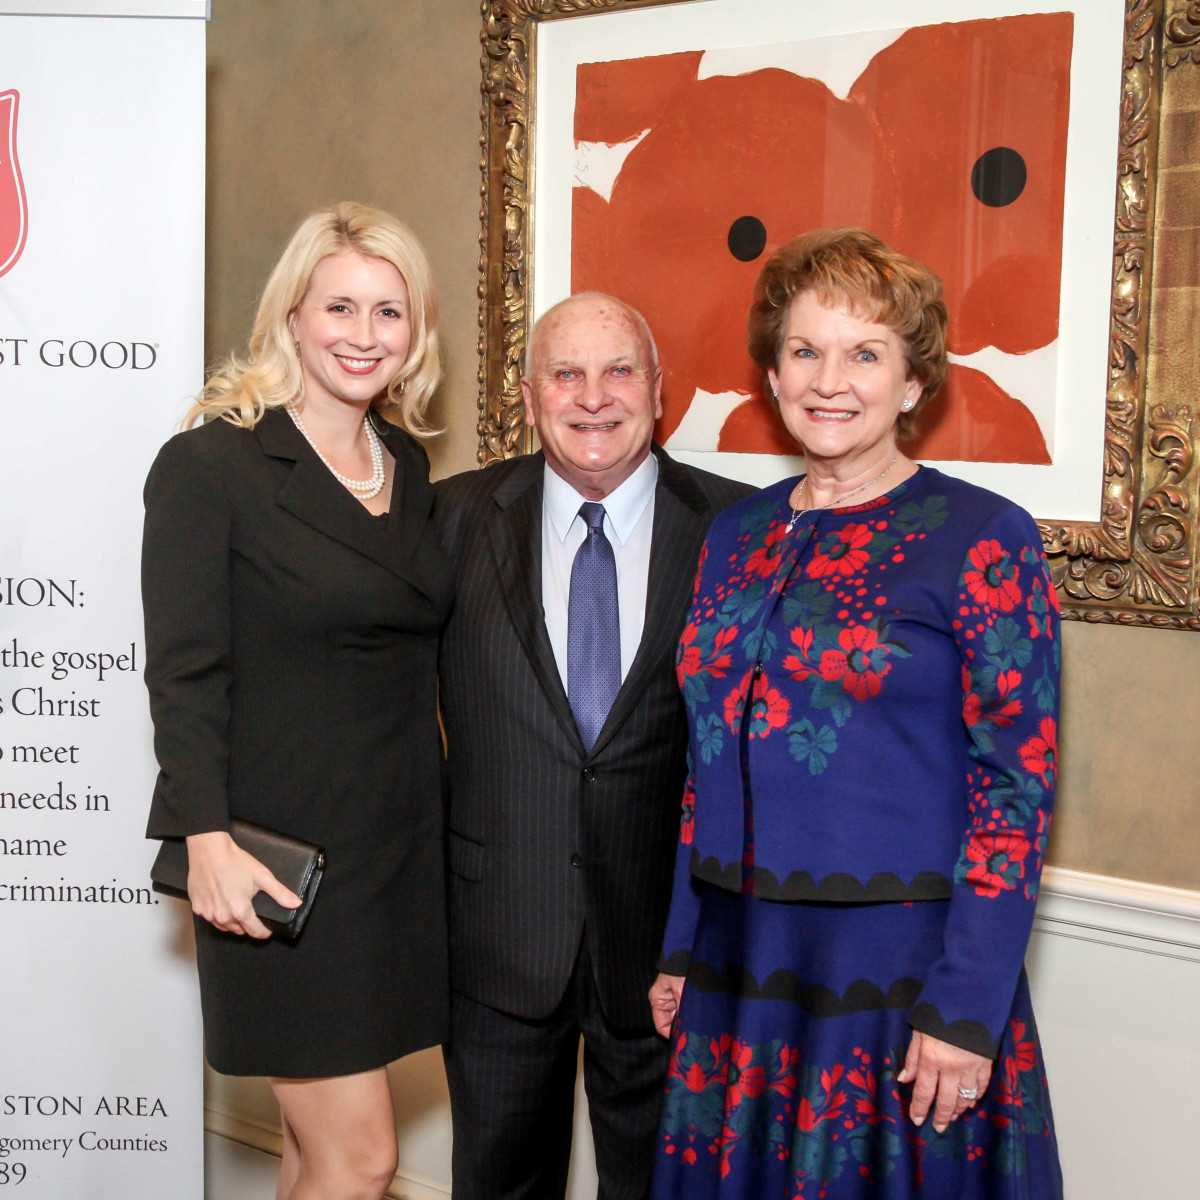 Houston, Salvation Army annual luncheon, Nov 2016, Sarah Wise, Jim Wise, Jane Wise